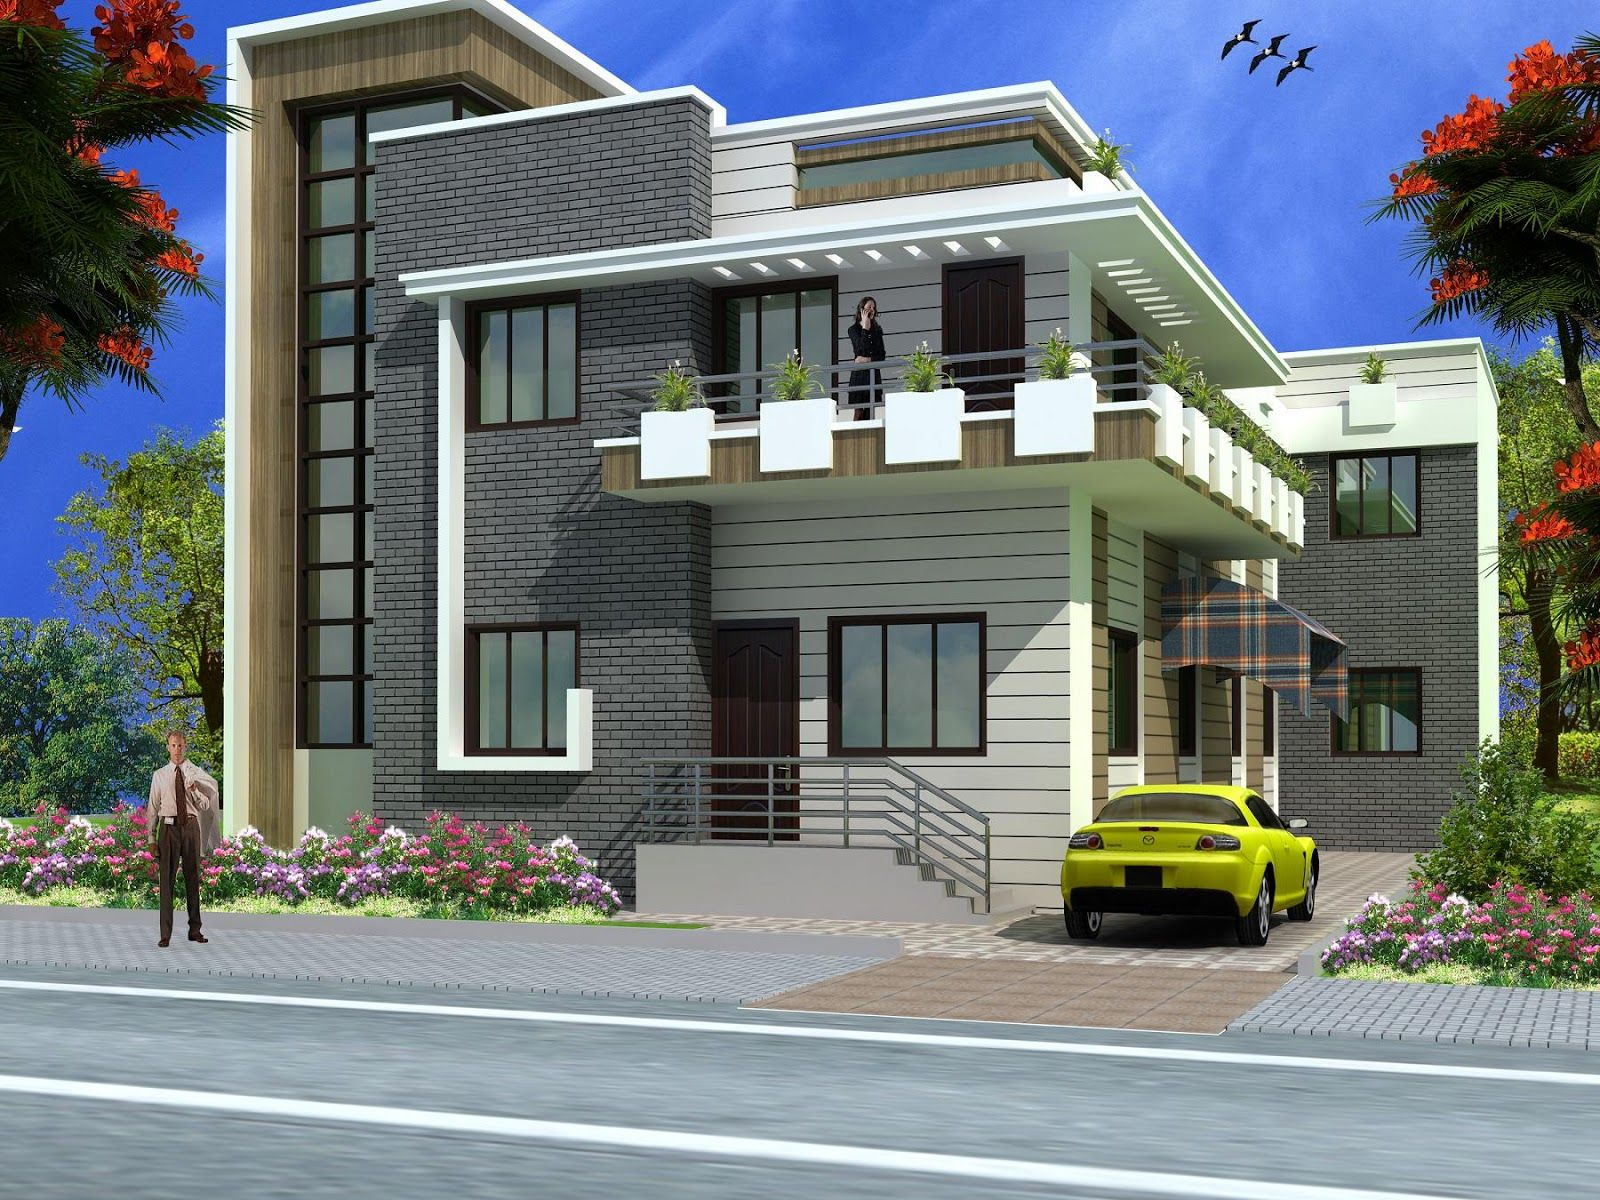 Architecture Design For Indian Homes front elevation of house design in india | house plans and ideas